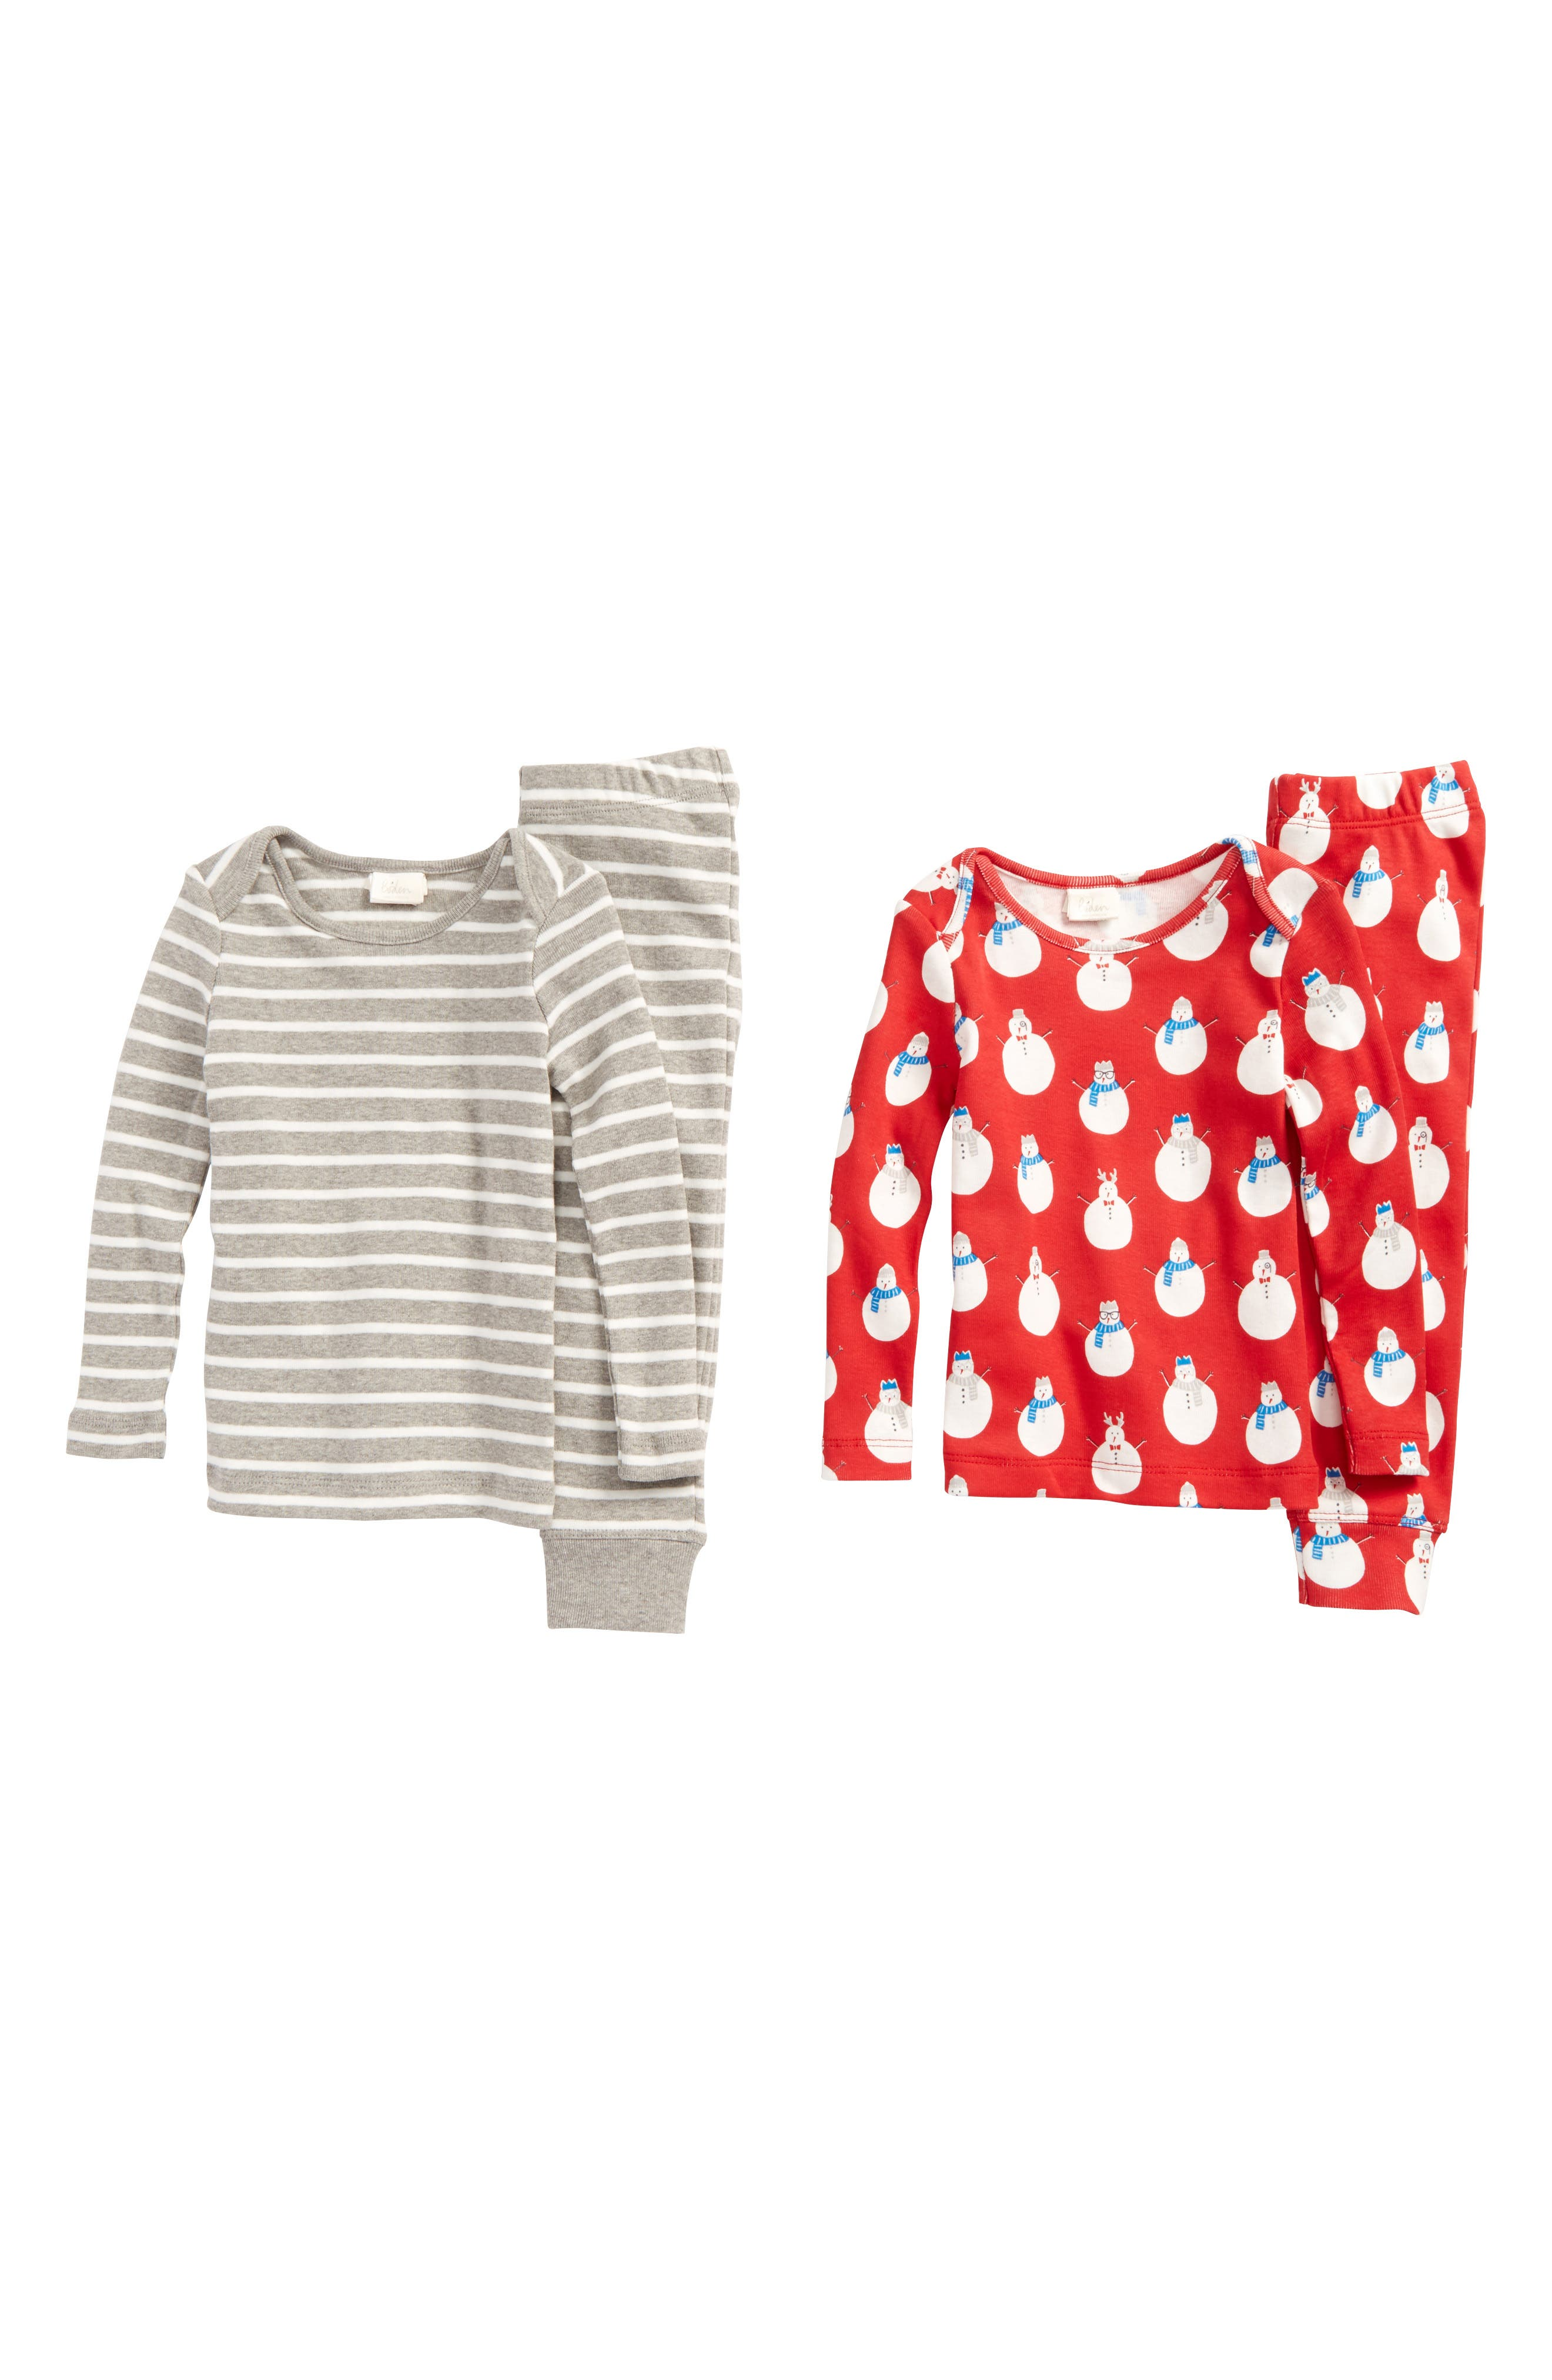 Main Image - Mini Boden 2-Pack Top & Pants Set (Baby Boys)